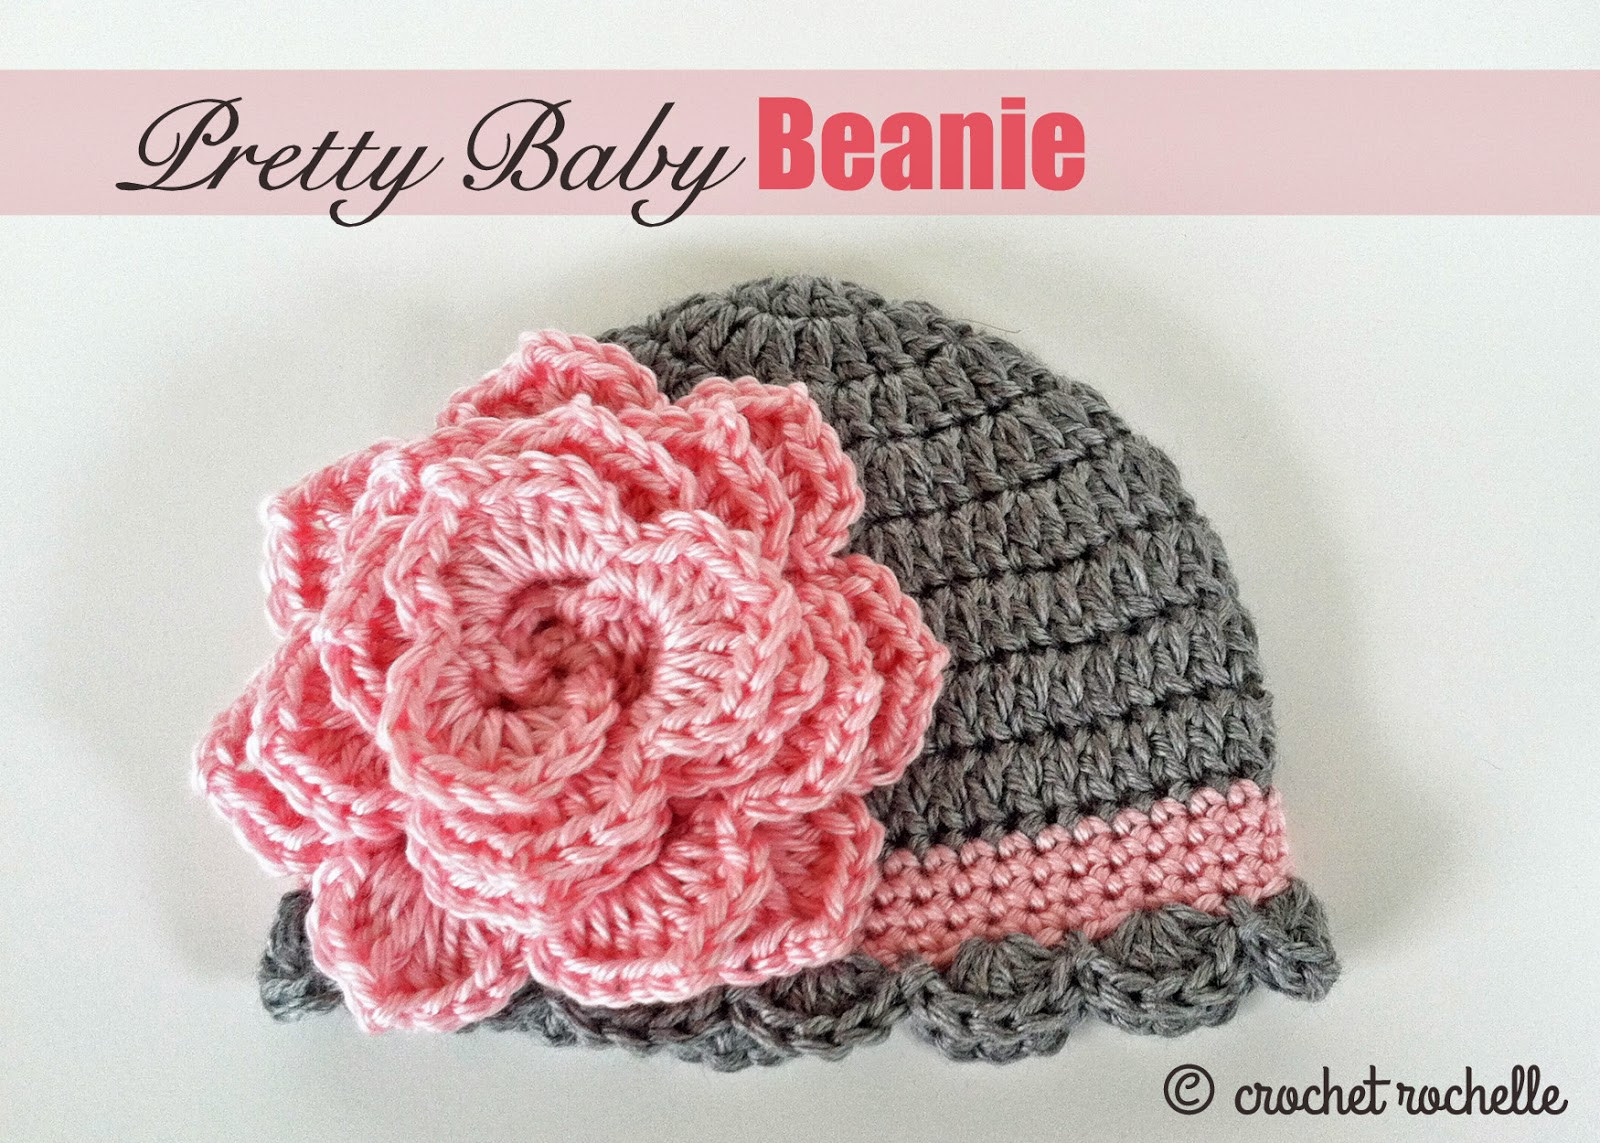 Baby Beanie Crochet Pattern Best Of Crochet Baby Hats with Flowers Free Patterns Crochet and Of Amazing 43 Images Baby Beanie Crochet Pattern